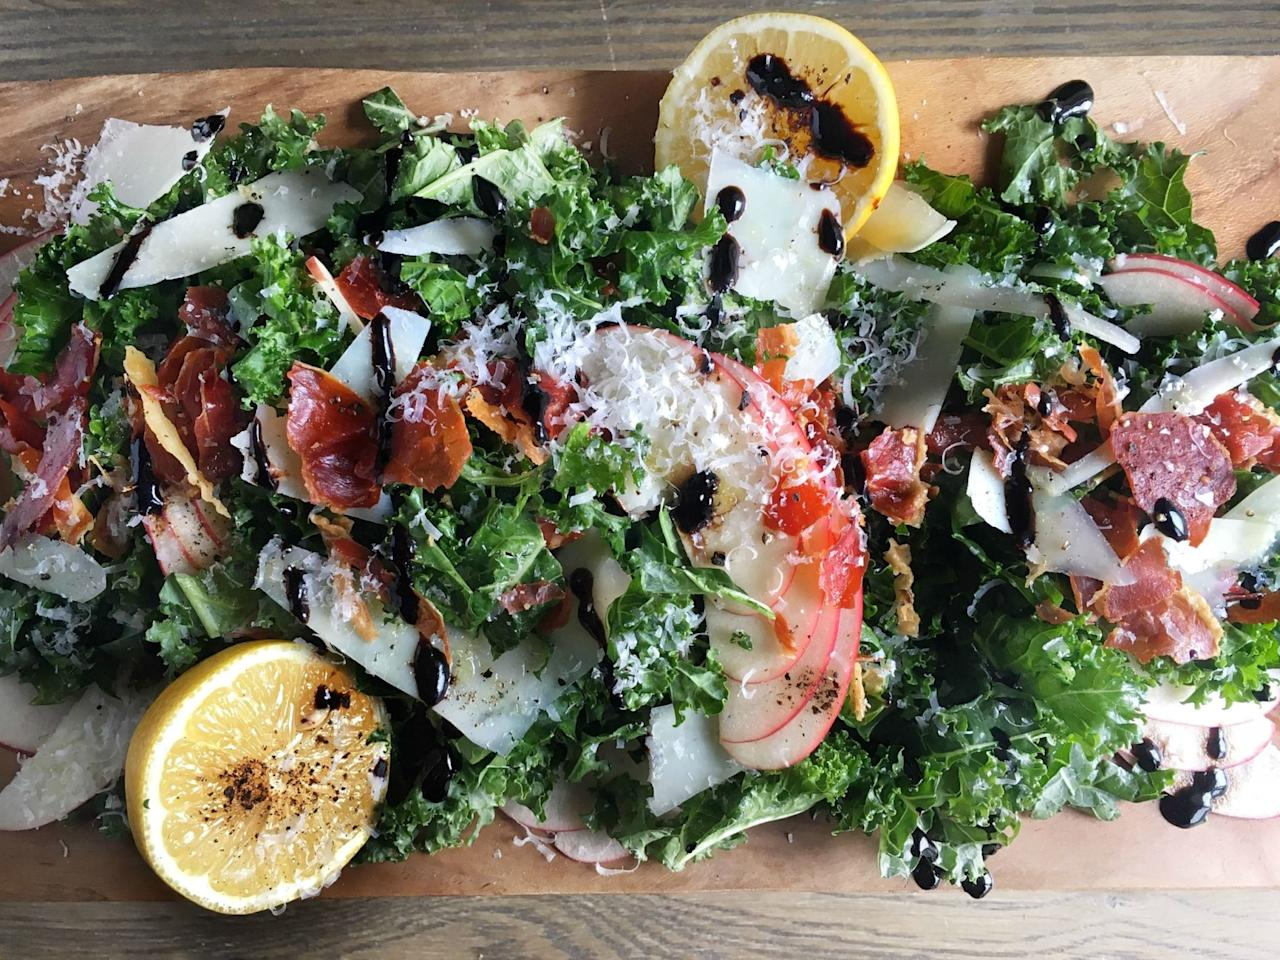 "<p>Can we always top our salads with meat and cheese, please?</p><p>Get the recipe from <a rel=""nofollow"" href=""http://www.delish.com/cooking/recipe-ideas/recipes/a46518/kale-apple-pecorino-salad-with-crispy-prosciutto-and-balsamic-drizzle-recipe/"">Delish</a>.</p><p><strong><em>ADD SOME FLAVOR: </em></strong><span><strong><em>Le Creuset Pepper Mill, $43; </em></strong><strong><em><a rel=""nofollow"" href=""https://www.amazon.com/Creuset-Ink-Inch-Pepper-Mill/dp/B01NCU7F4R/?tag=syndication-20"">amazon.com</a>.</em></strong></span><span></span><br></p>"